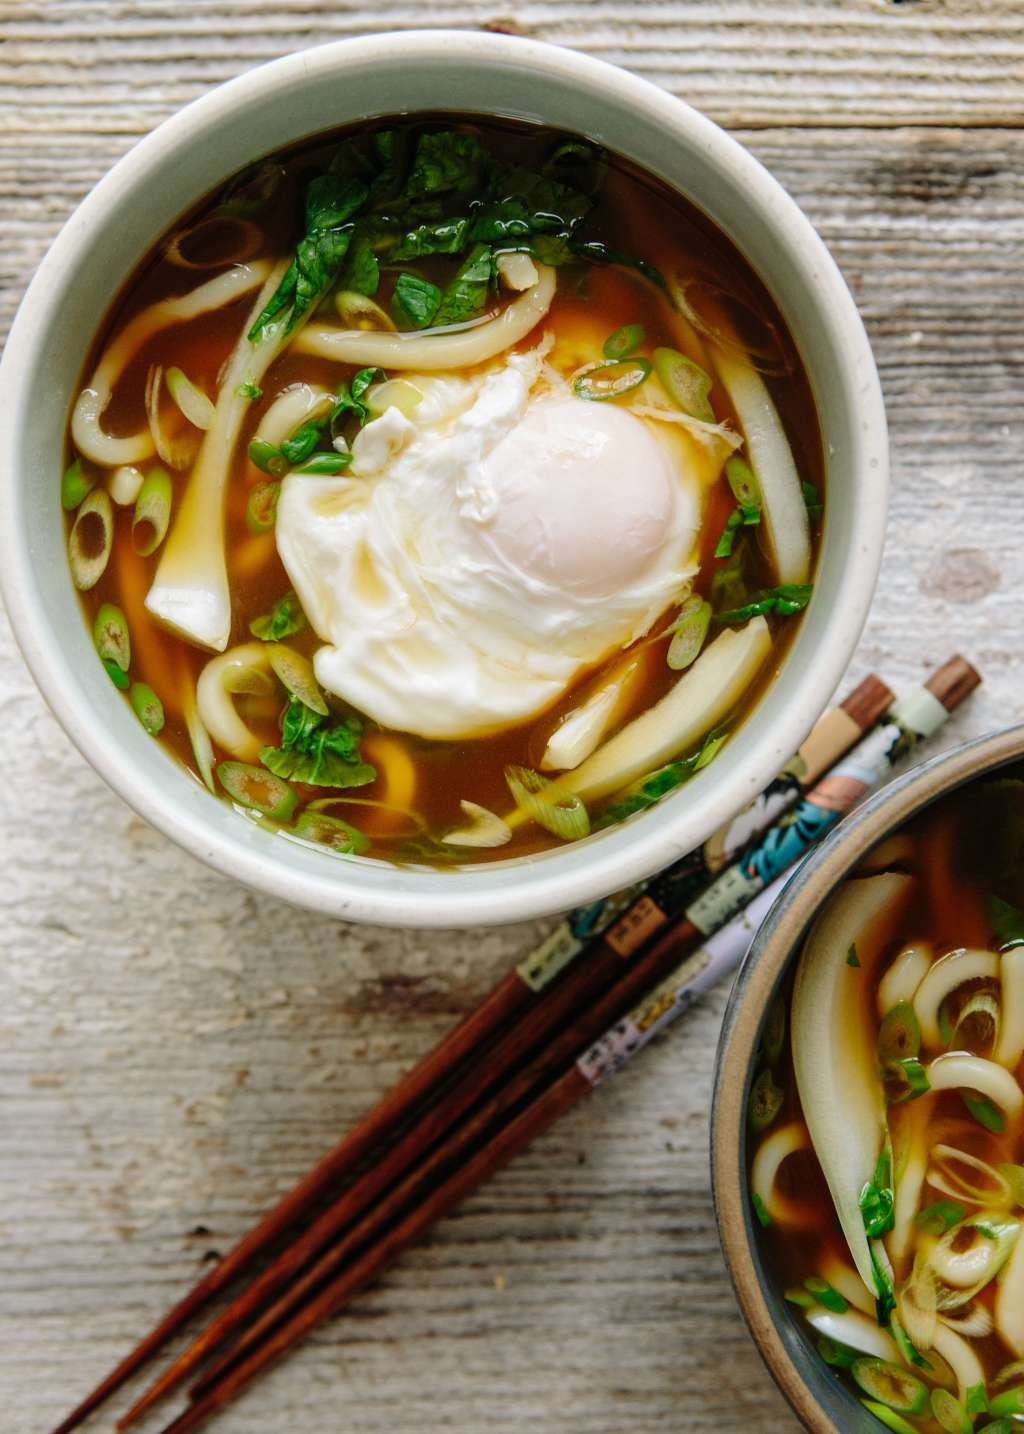 This Quick Chicken Udon Noodle Soup Is a Weeknight Wonder